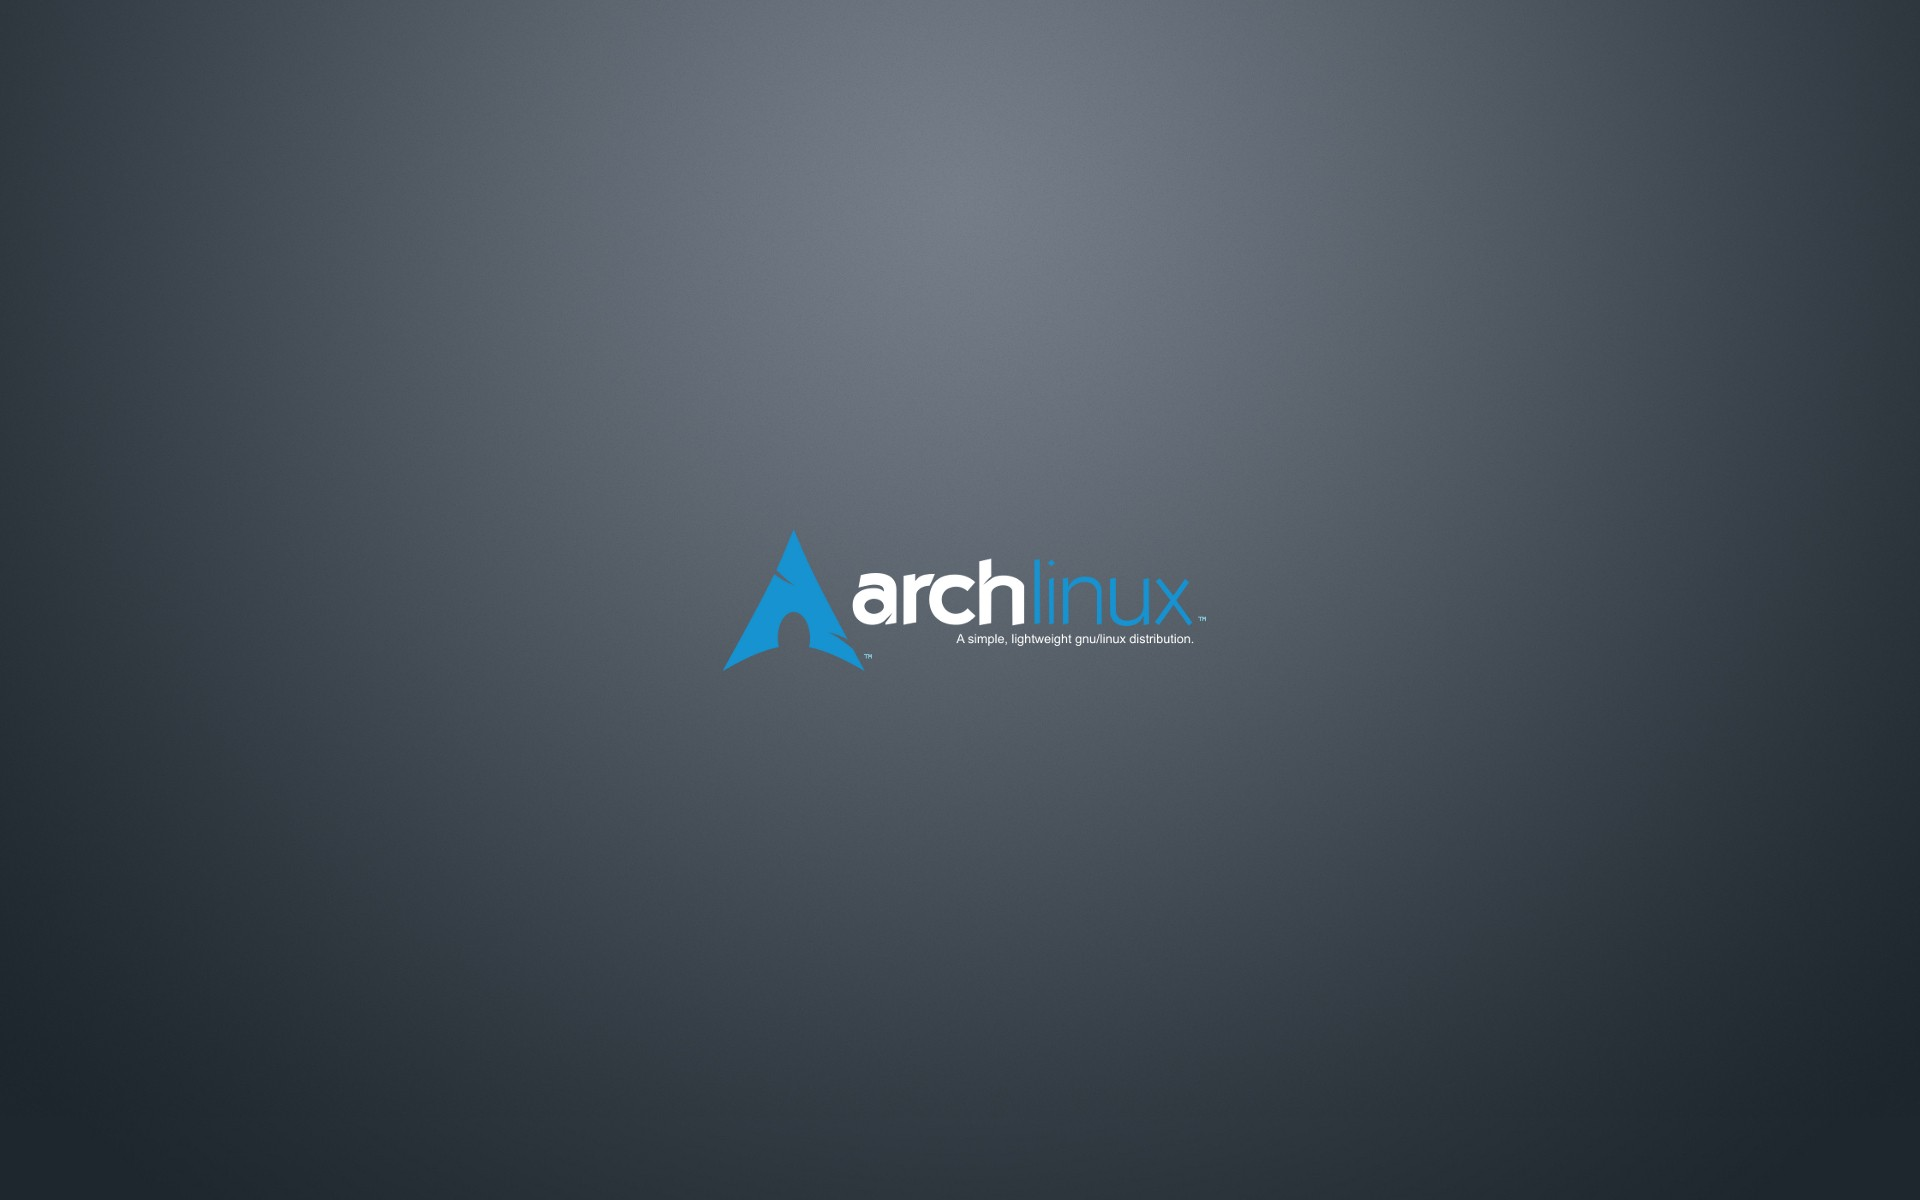 Arch Linux Wallpaper 06